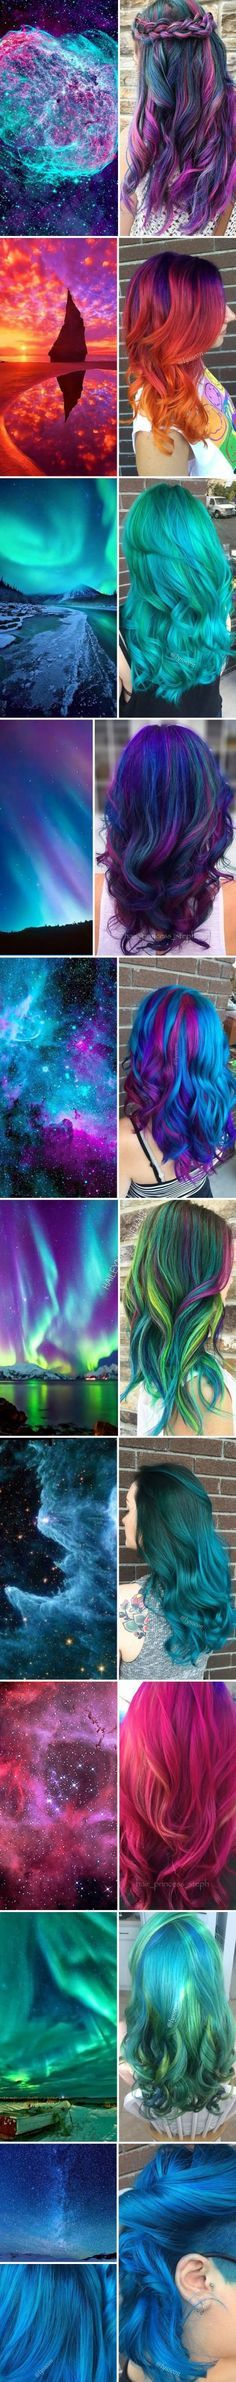 """This """"Galaxy Hair"""" trend is actually quite mesmerizing"""